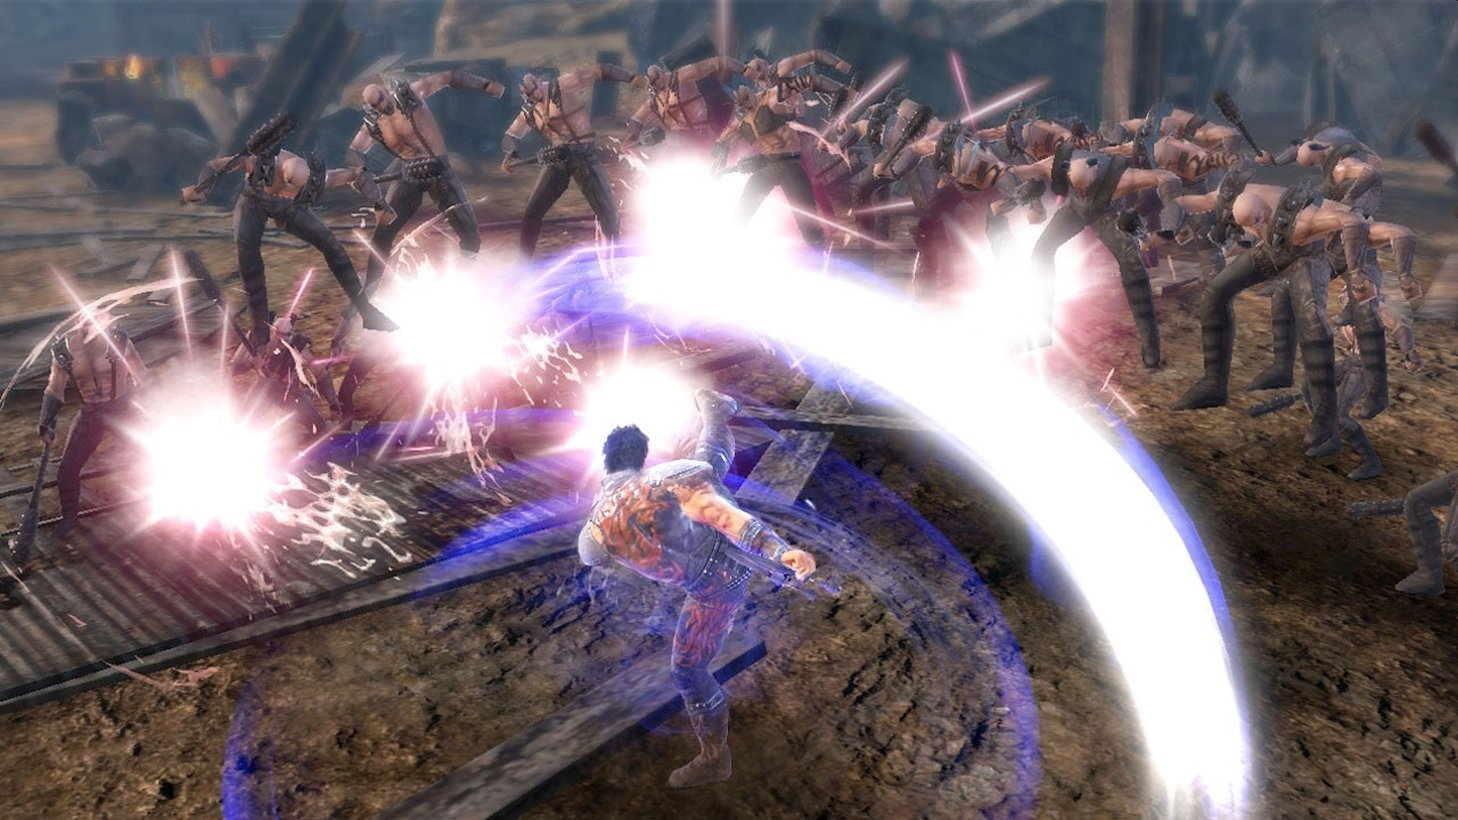 Koei Tecmo Releases First Japanese Trailer For Fist Of The North Star Mobile Game